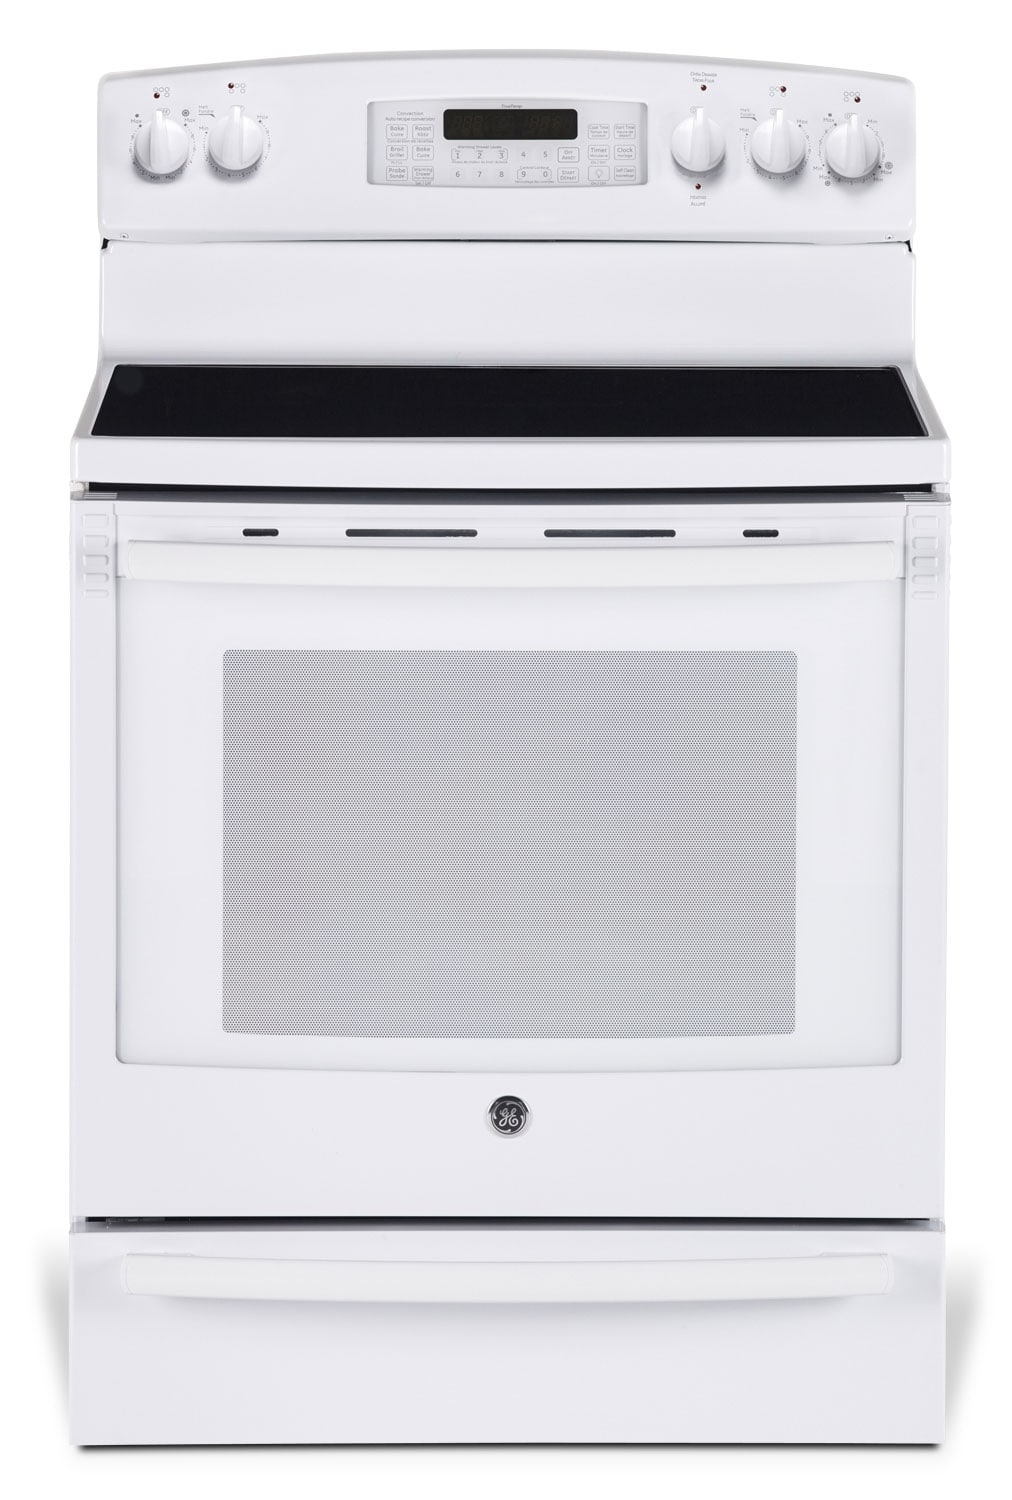 [GE White Freestanding Electric Convection Range (7.2 Cu. Ft.) - PCB980DFWW]